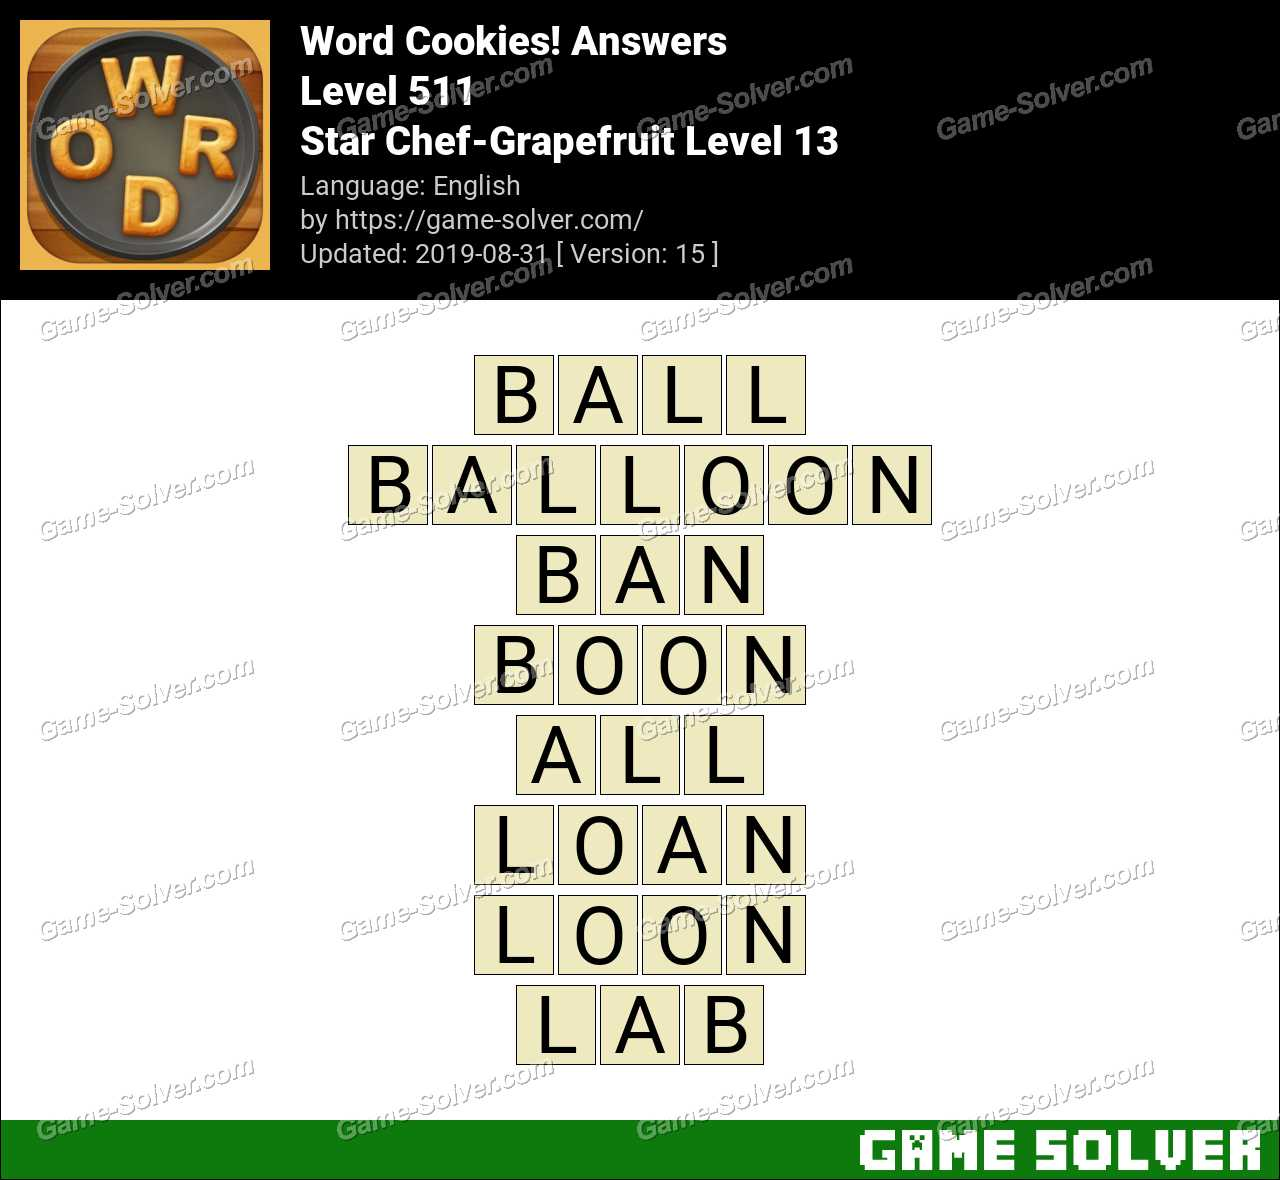 Word Cookies Star Chef-Grapefruit Level 13 Answers